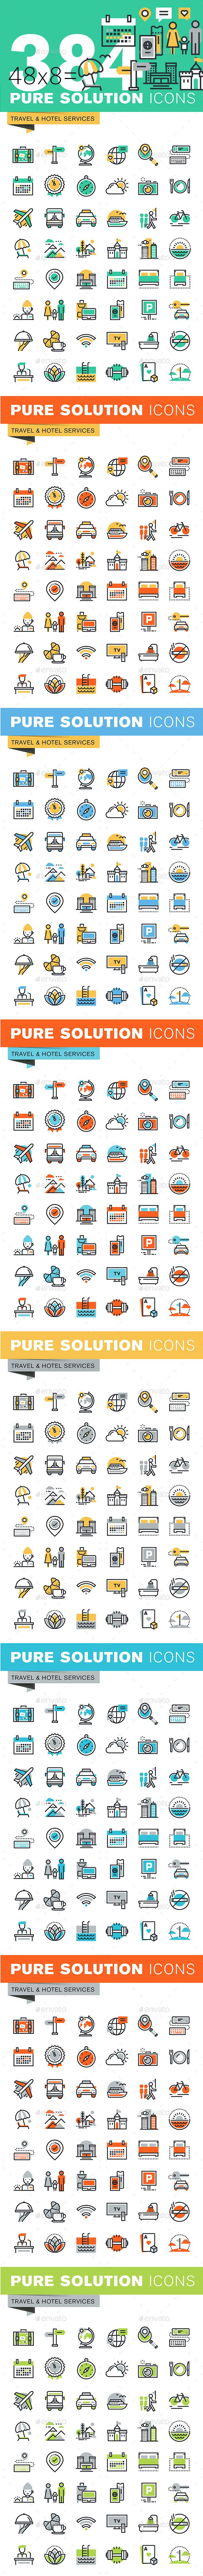 Set of Thin Line Flat Design Icons of Travel and Tourism. Download here: http://graphicriver.net/item/set-of-thin-line-flat-design-icons-of-travel-and-tourism/14788444?ref=ksioks